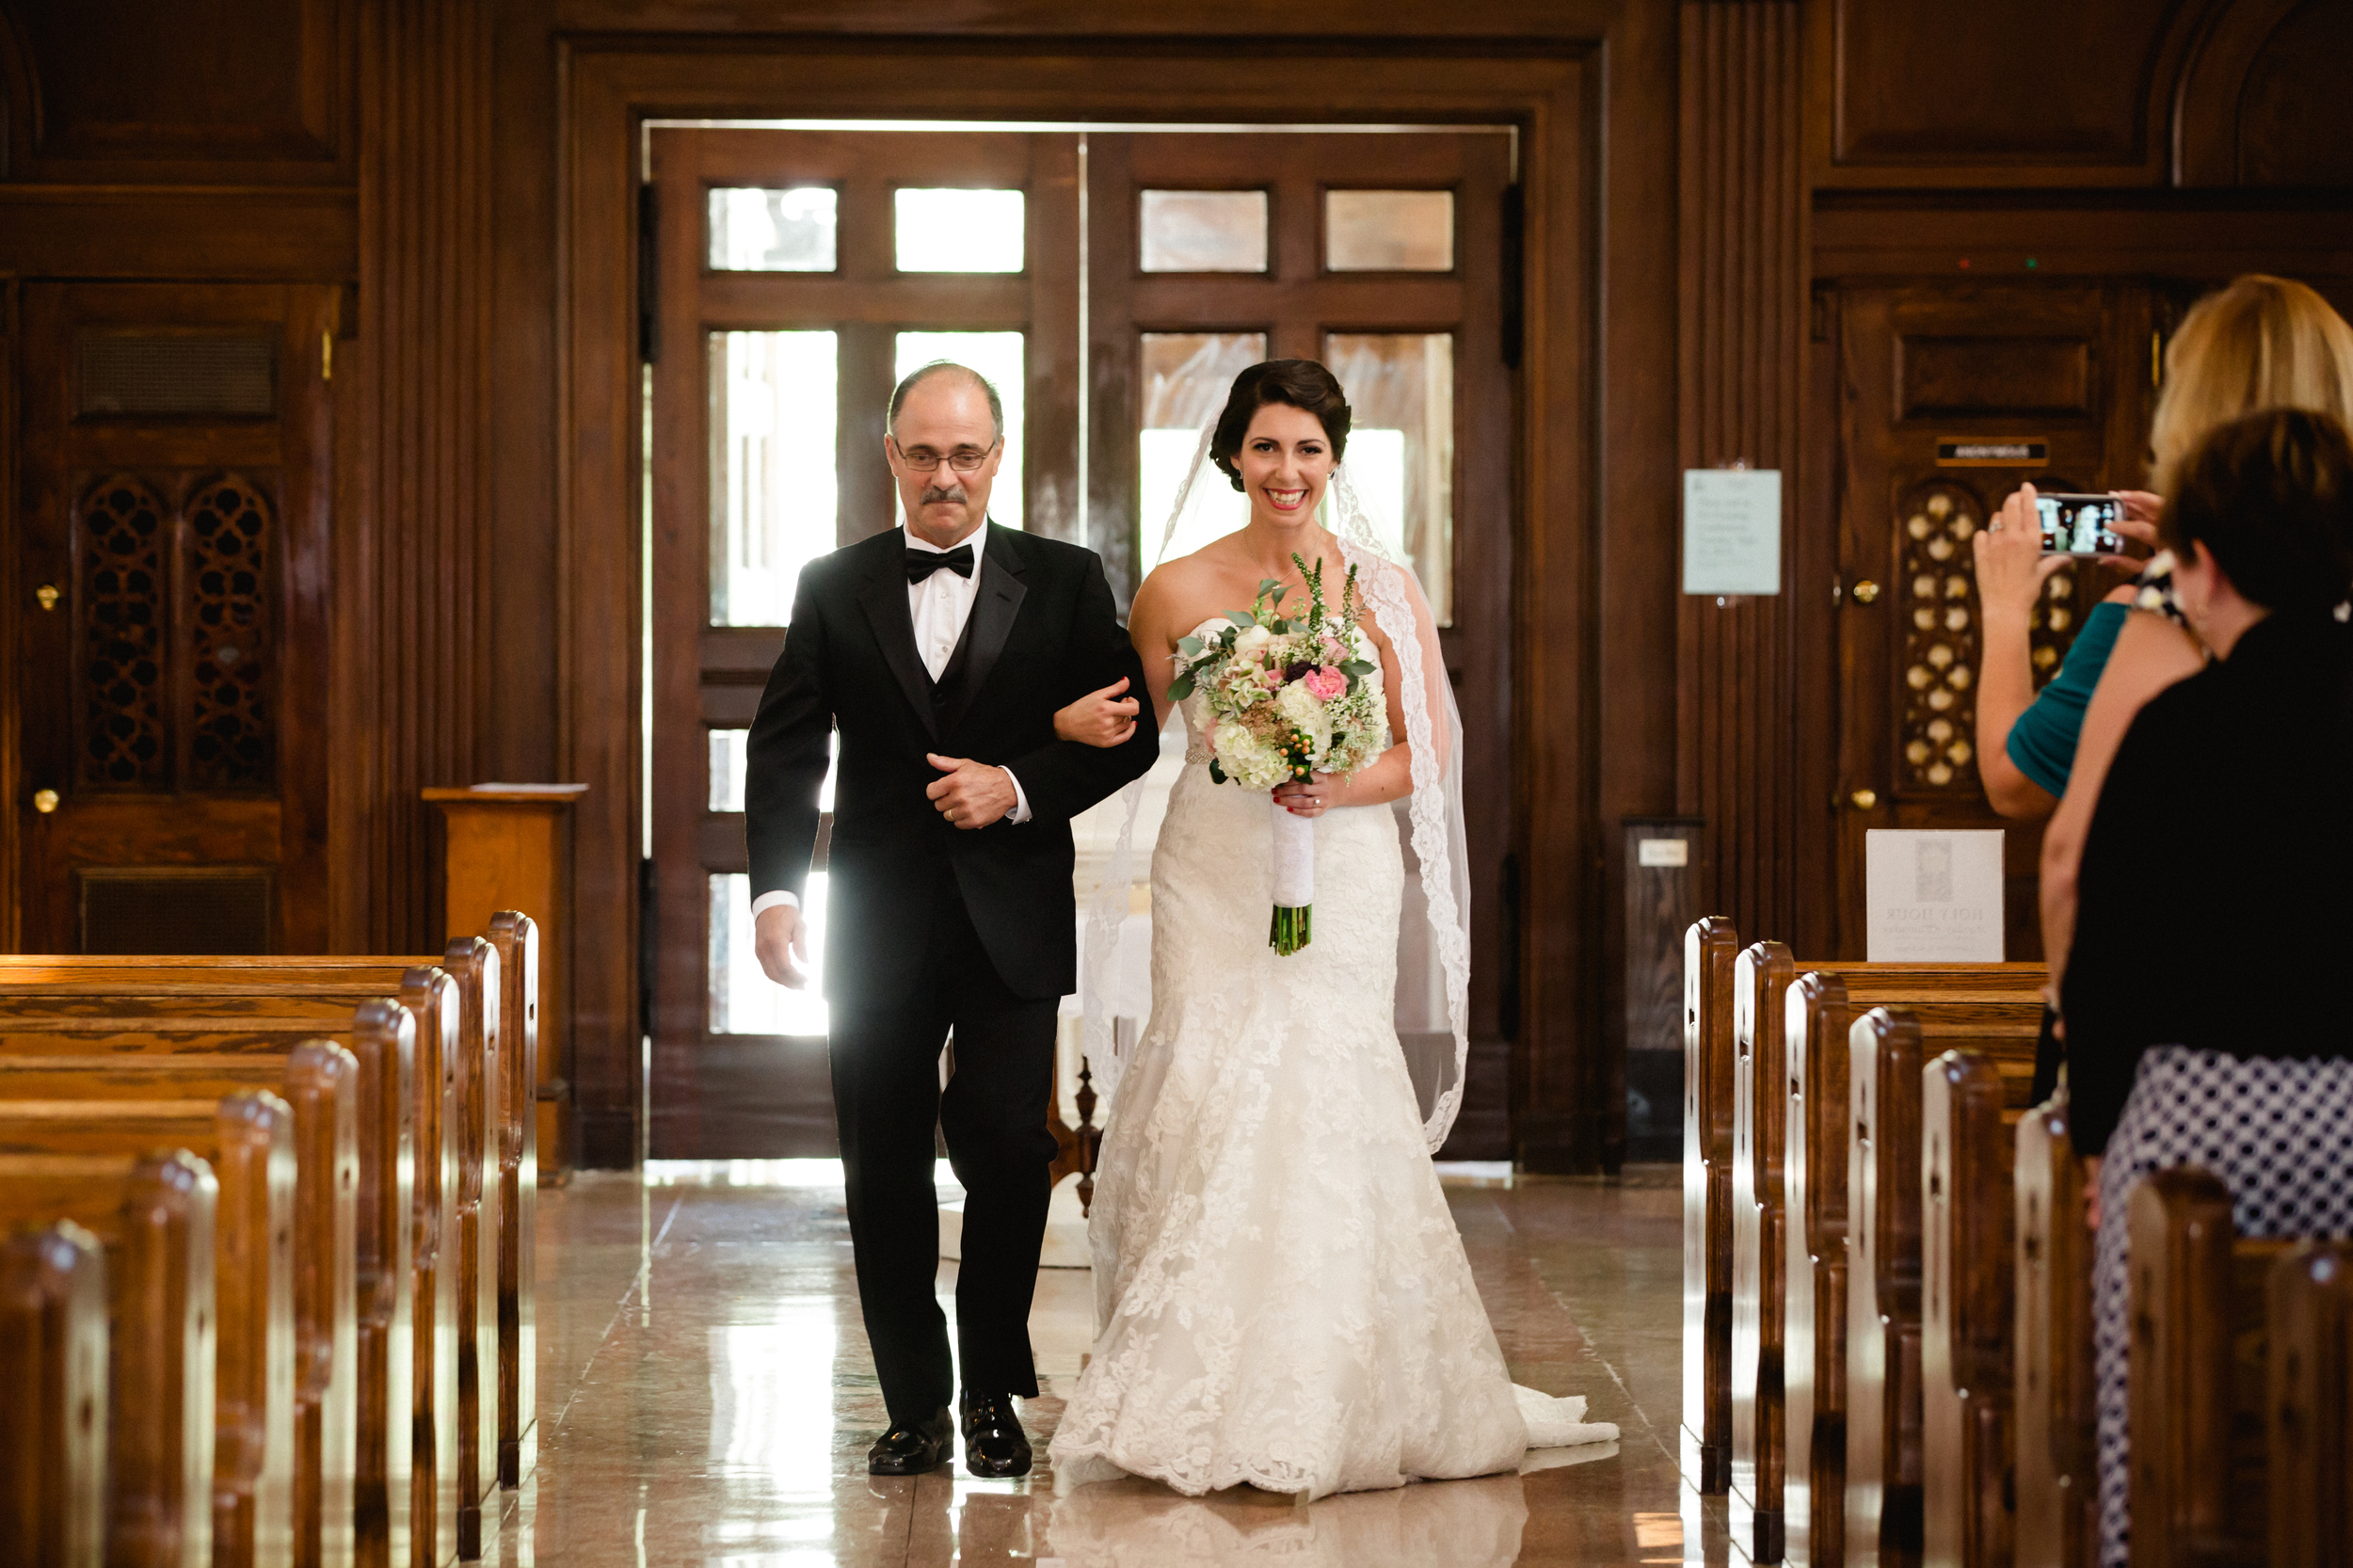 Vness_Photography_Wedding_Photographer_Washington-DC_Fish_Wedding-298.JPG